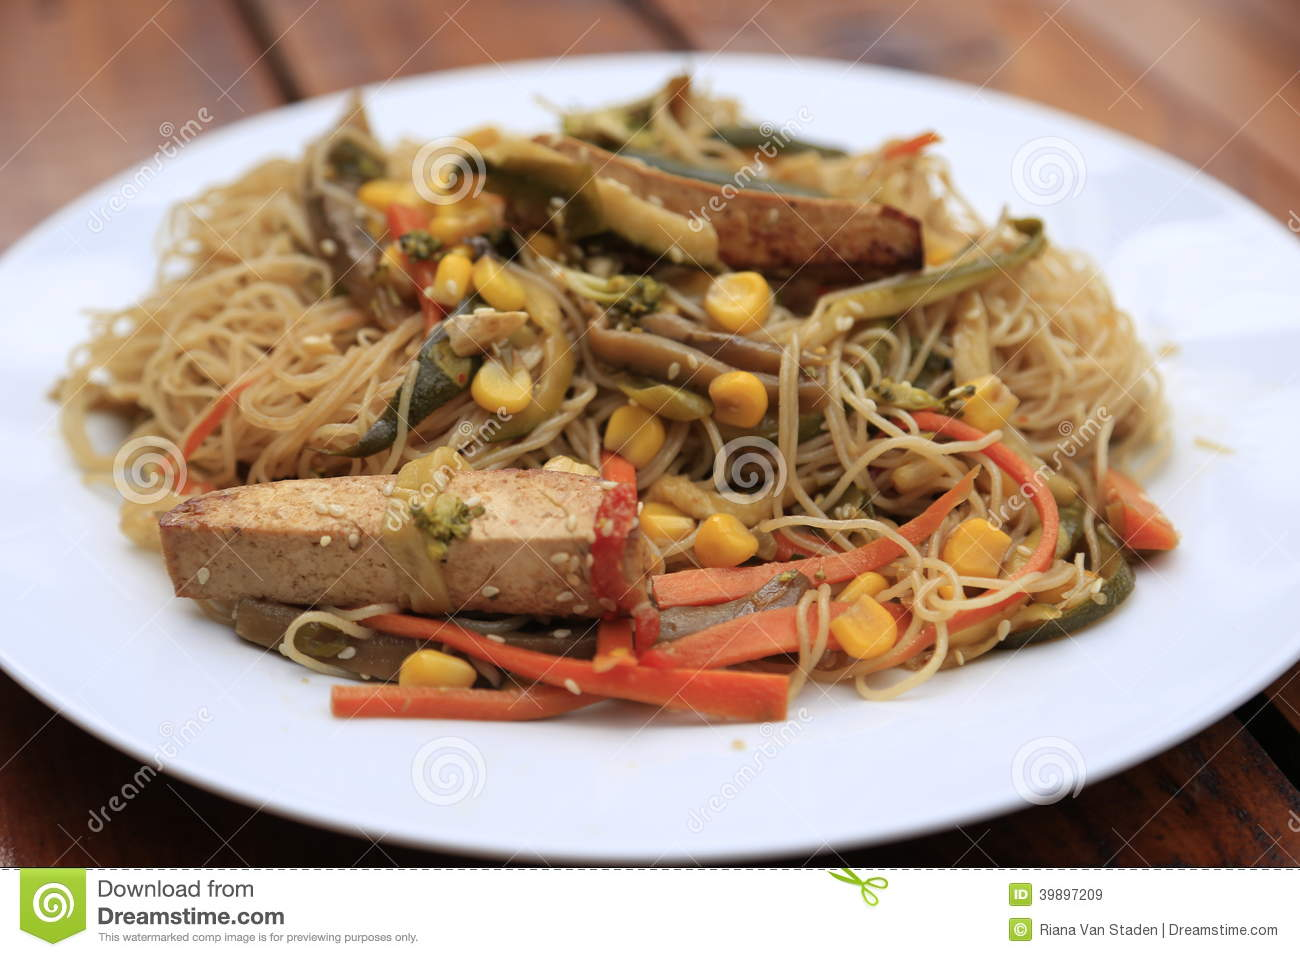 Garden stir fry with rice noodles and tofu.